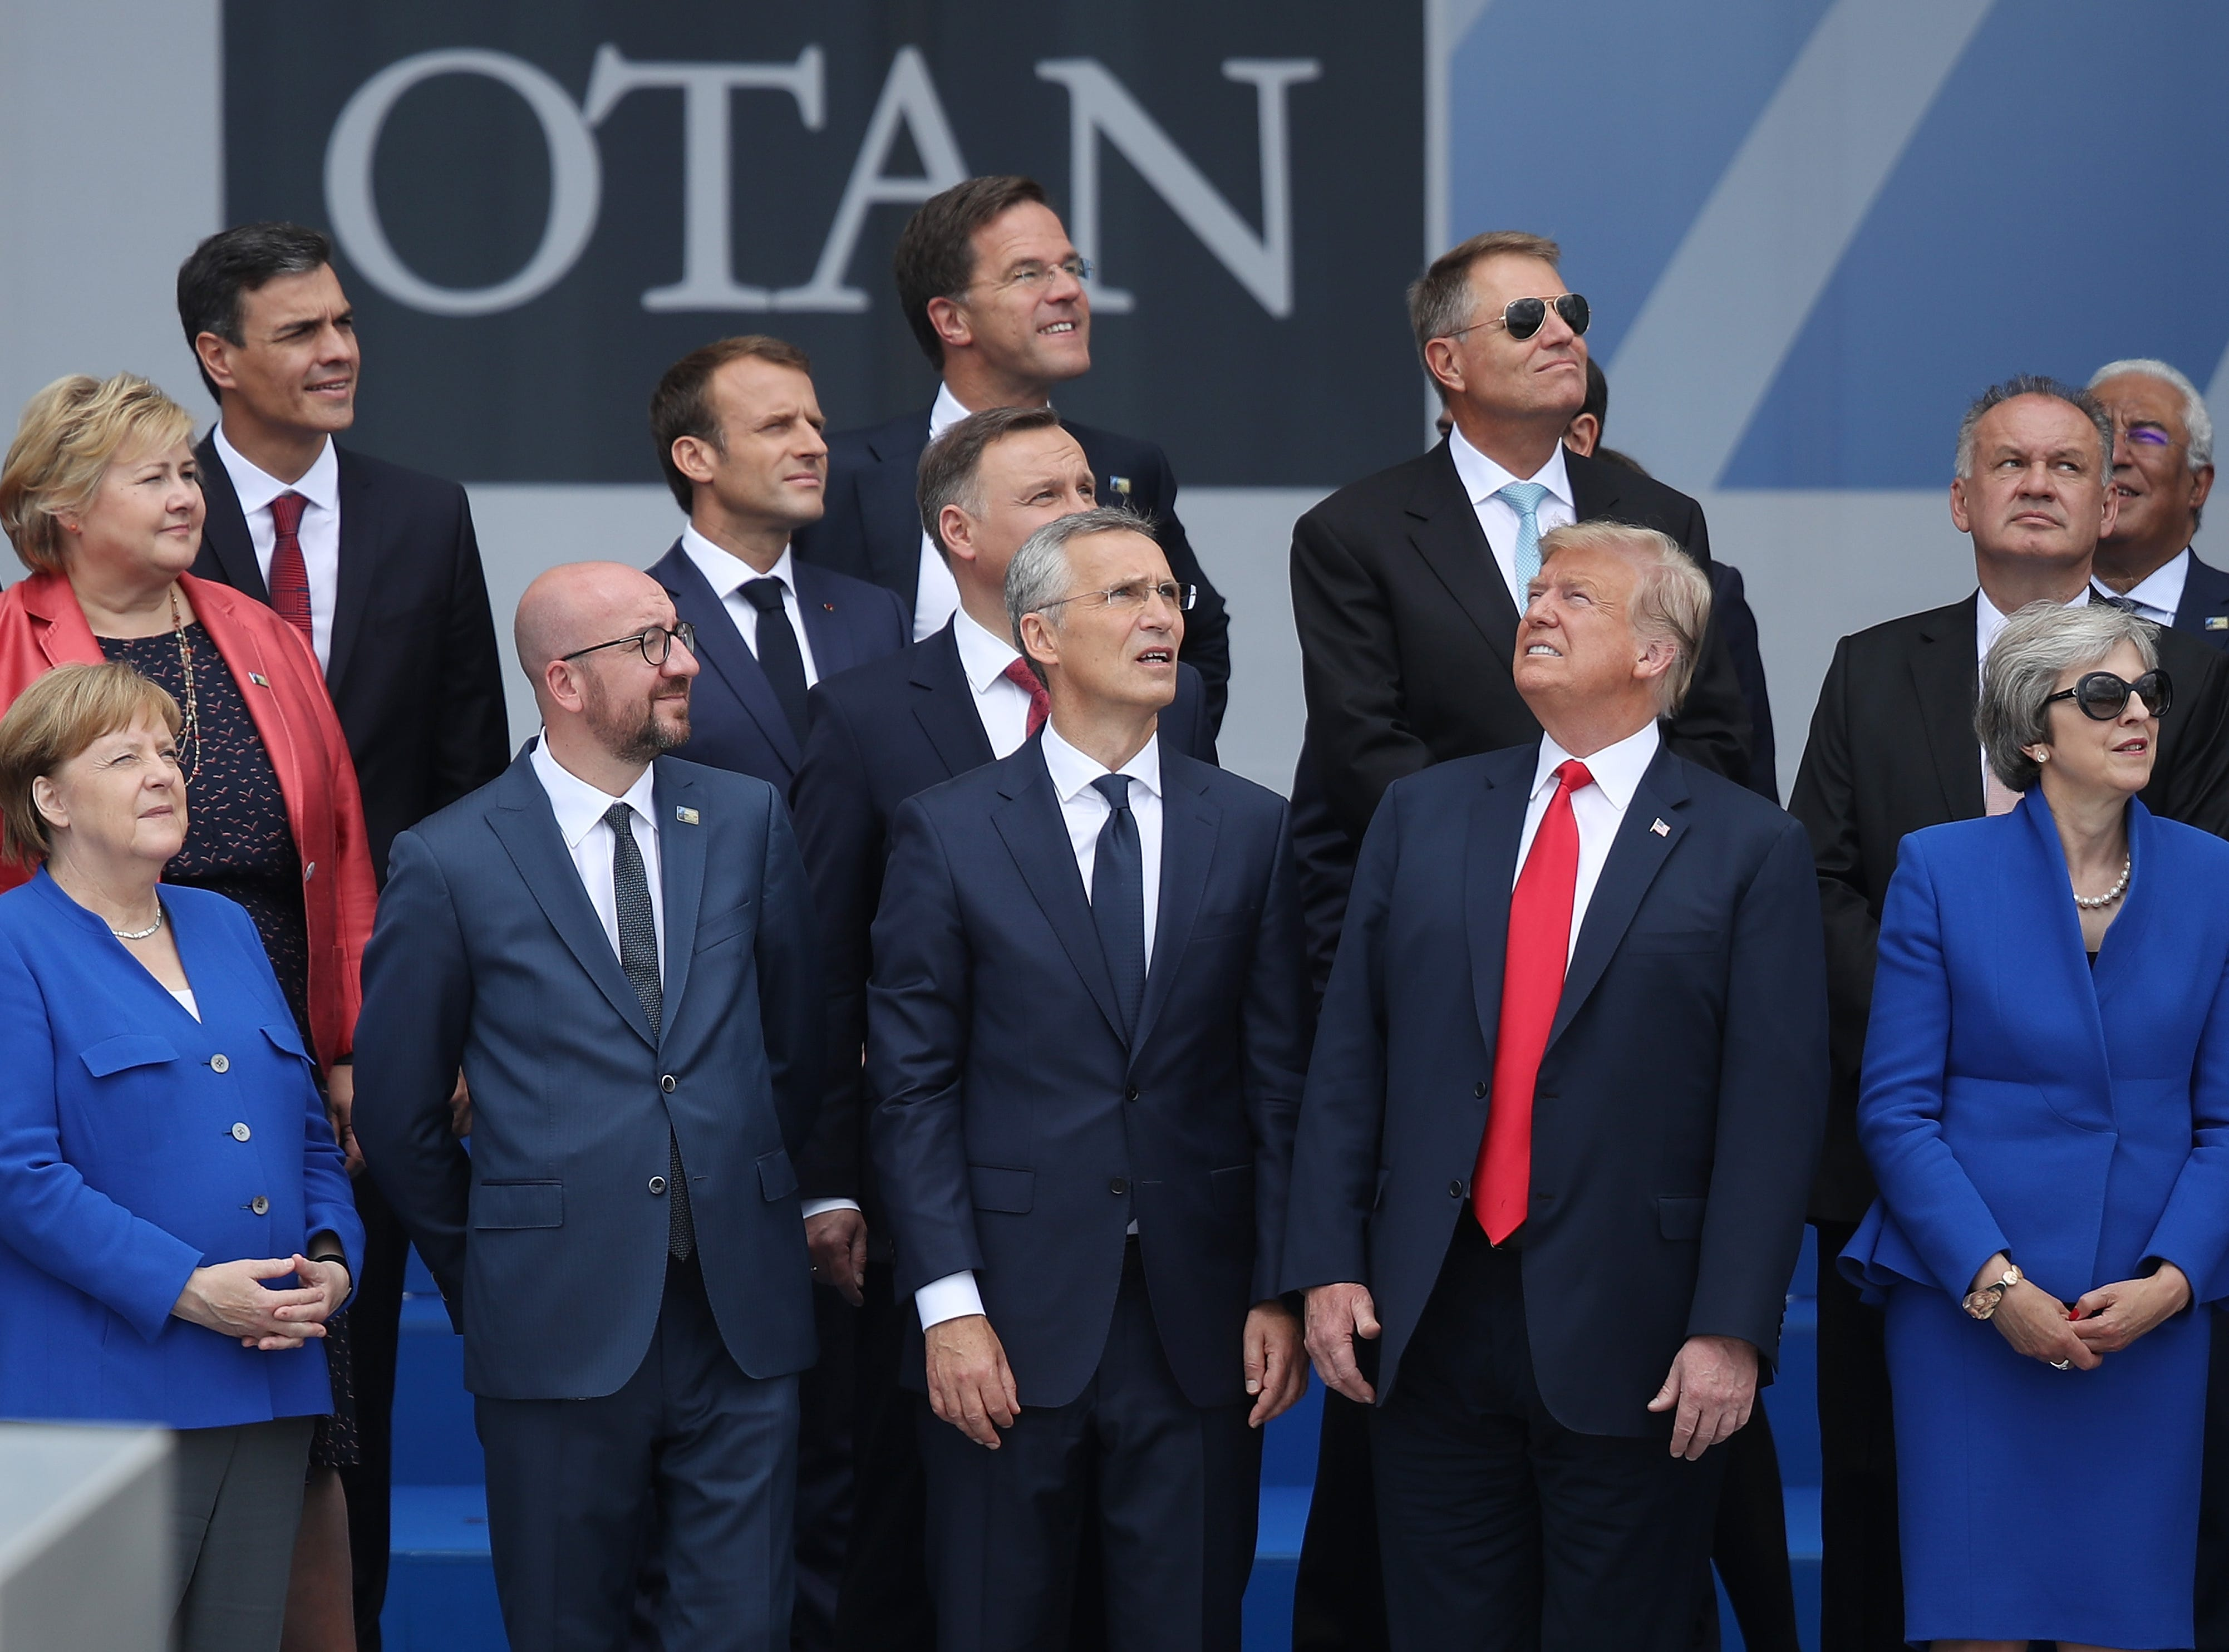 July 11, 2018: (From L to R, first row) German Chancellor Angela Merkel, Belgian Prime Minister Charles Michel, NATO Secretary General Jens Stoltenberg, President Donald Trump and British Prime Minister Theresa May attend the opening ceremony at the 2018 NATO Summit at NATO headquarters in Brussels, Belgium. Leaders from NATO member and partner states are meeting for a two-day summit, which is being overshadowed by strong demands by President Trump for most NATO member countries to spend more on defense.